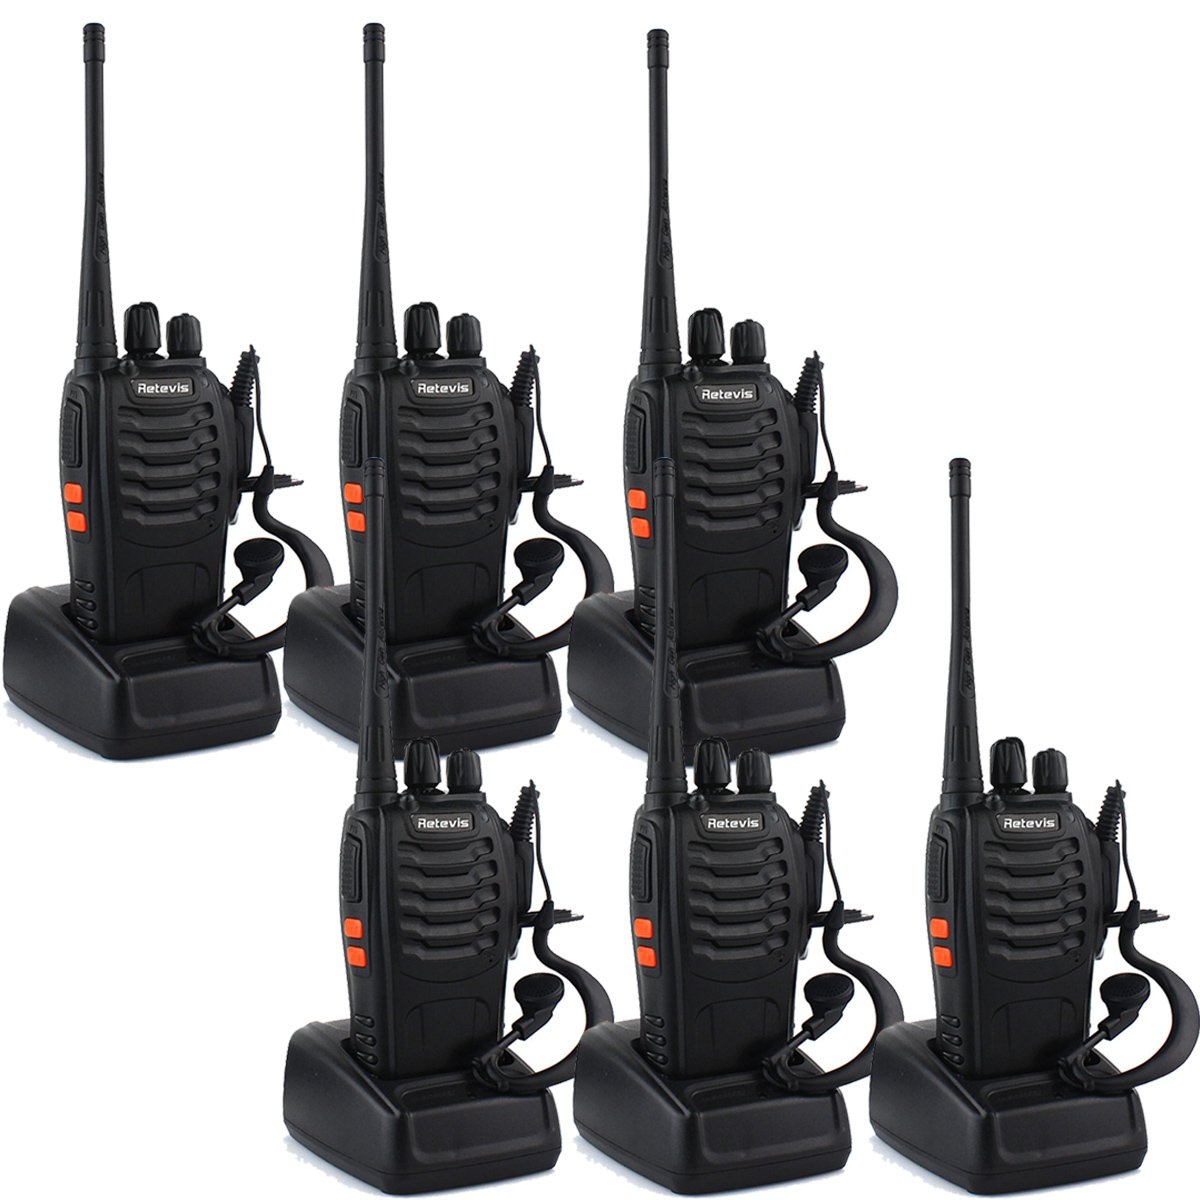 Retevis H-777 Two-Way Radio 3W Signal Band UHF 400-470MHz (Pack of 6)